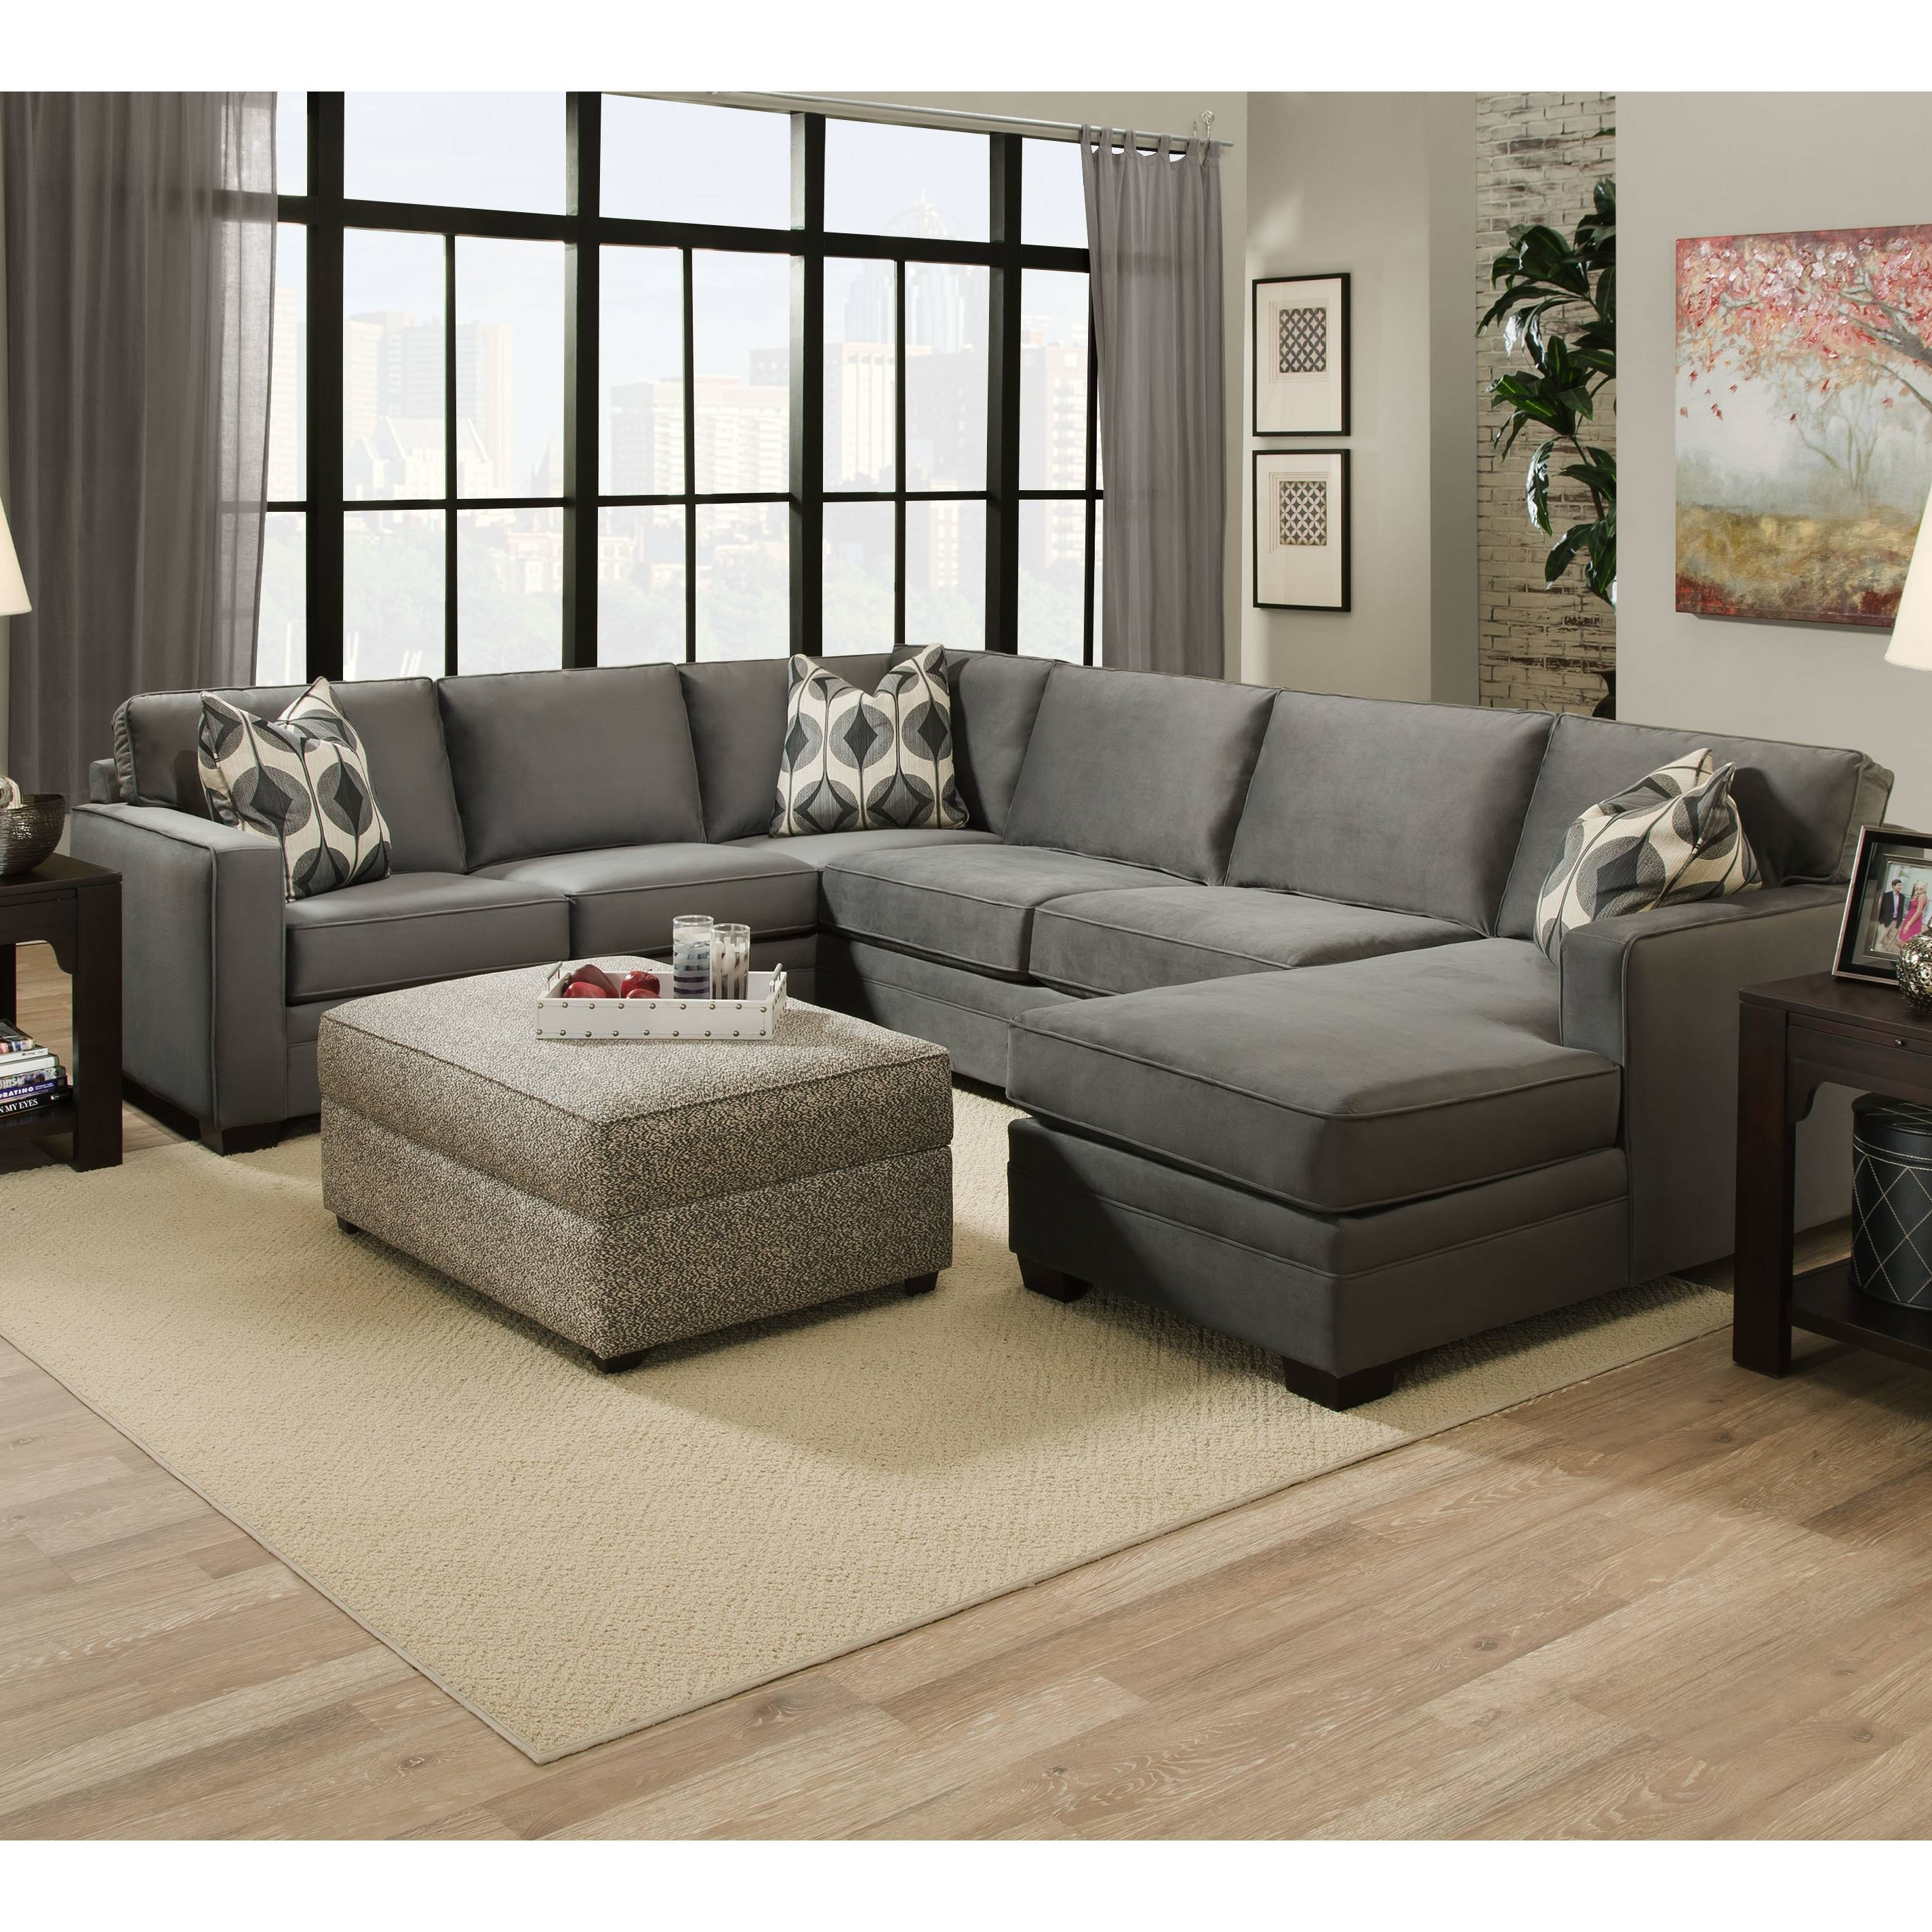 Best Bauhaus Sectional Sofa 23 In Sectional Sofa Denver With inside Bauhaus Furniture Sectional Sofas (Image 7 of 15)